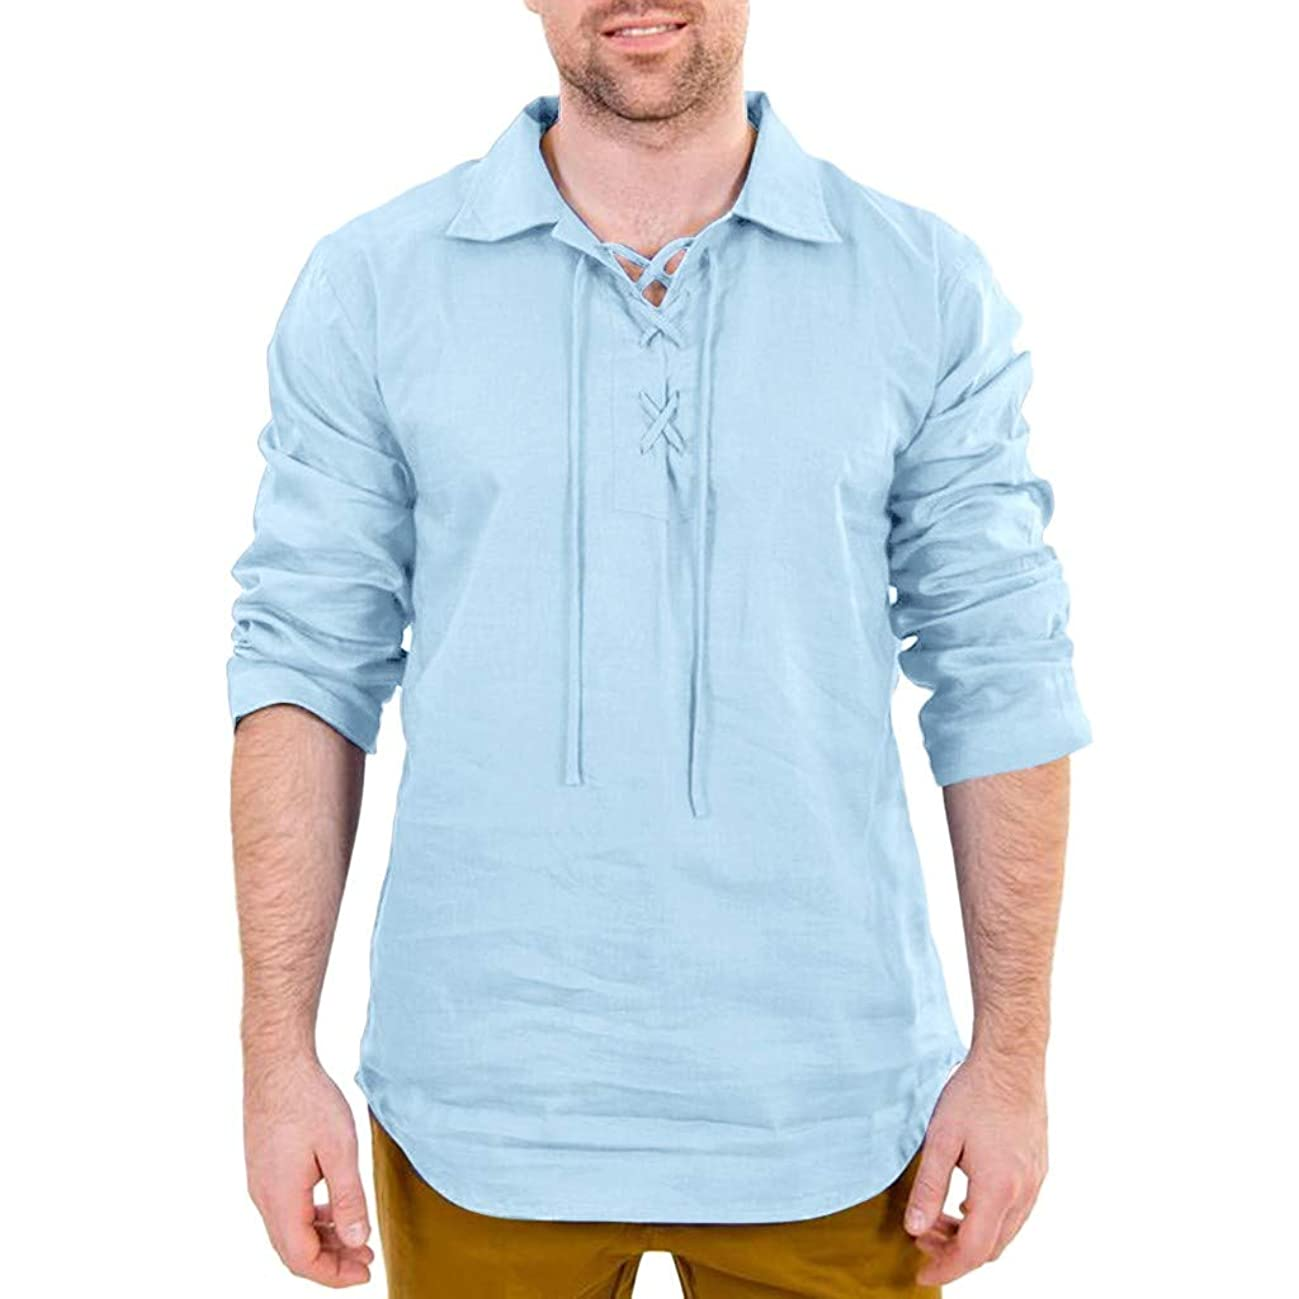 Men's Cotton Linen Shirts Summer Solid Long Sleeve Turn-Down Vintage Tee Tops Blouses